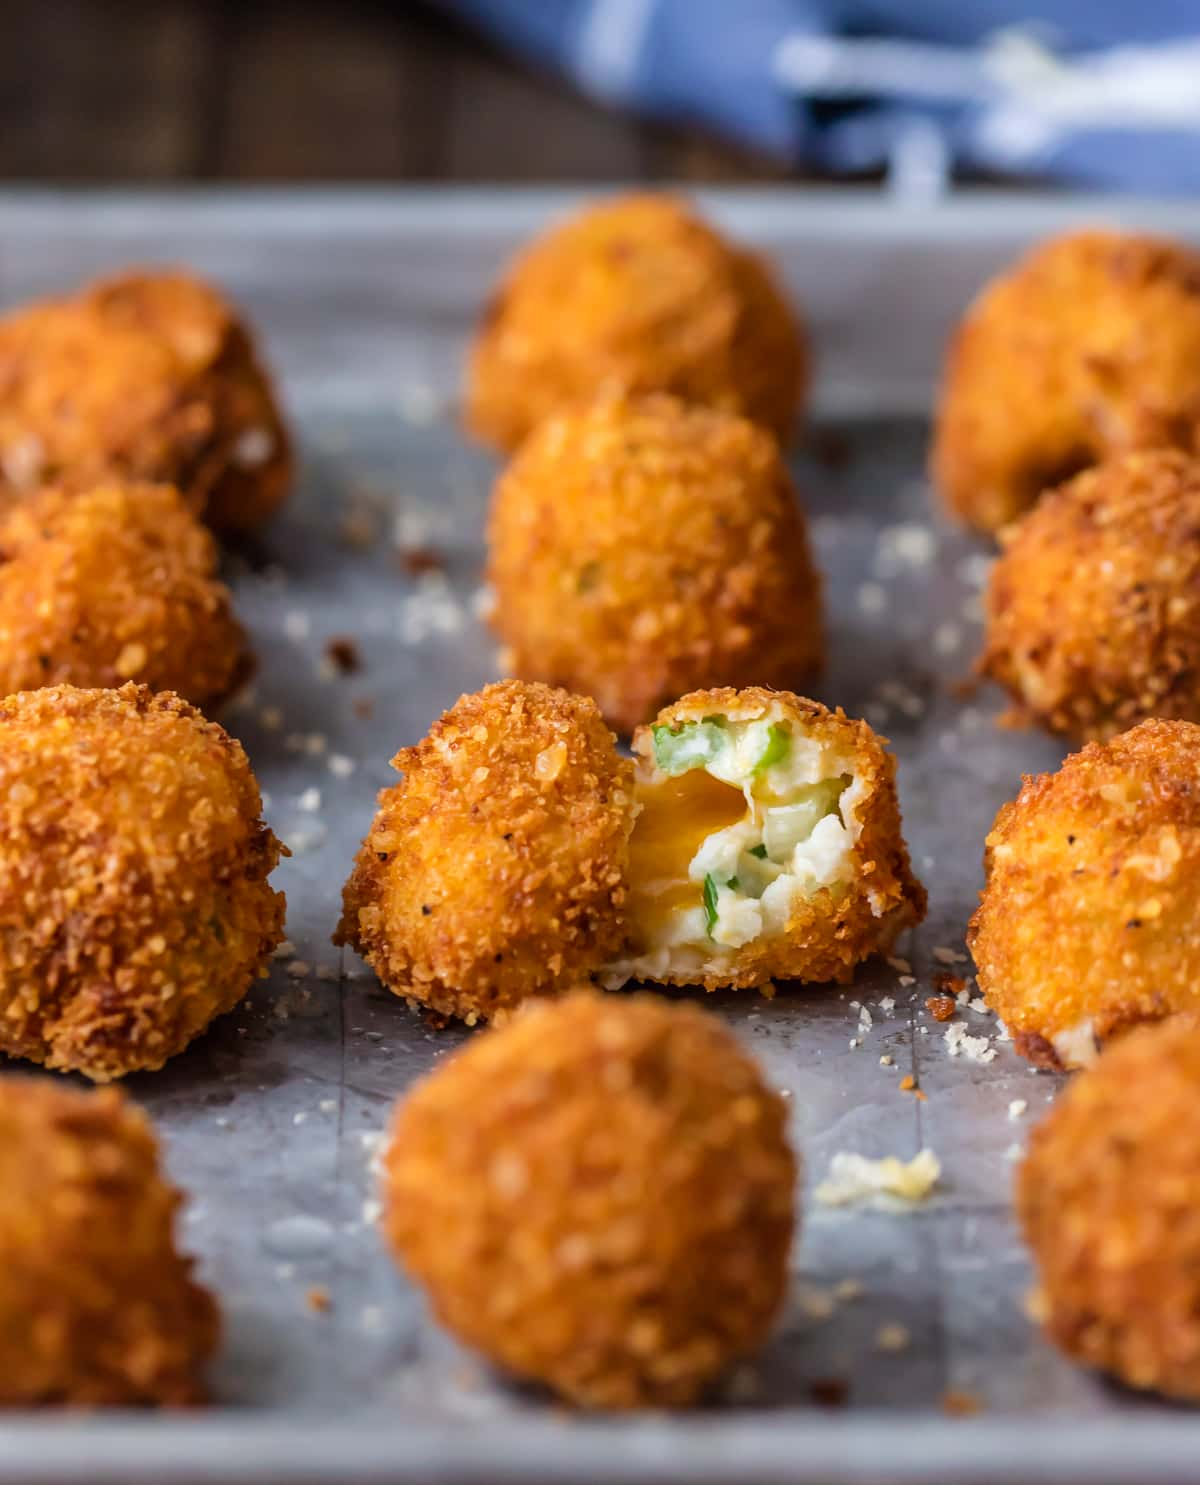 DEEP FRIED LOADED MASHED POTATO BITES loaded with bacon, cheese, and onions are perfect for Thanksgiving leftovers! Put those leftover mashed potatoes to good use and fry them! The ultimate appetizer or side dish!